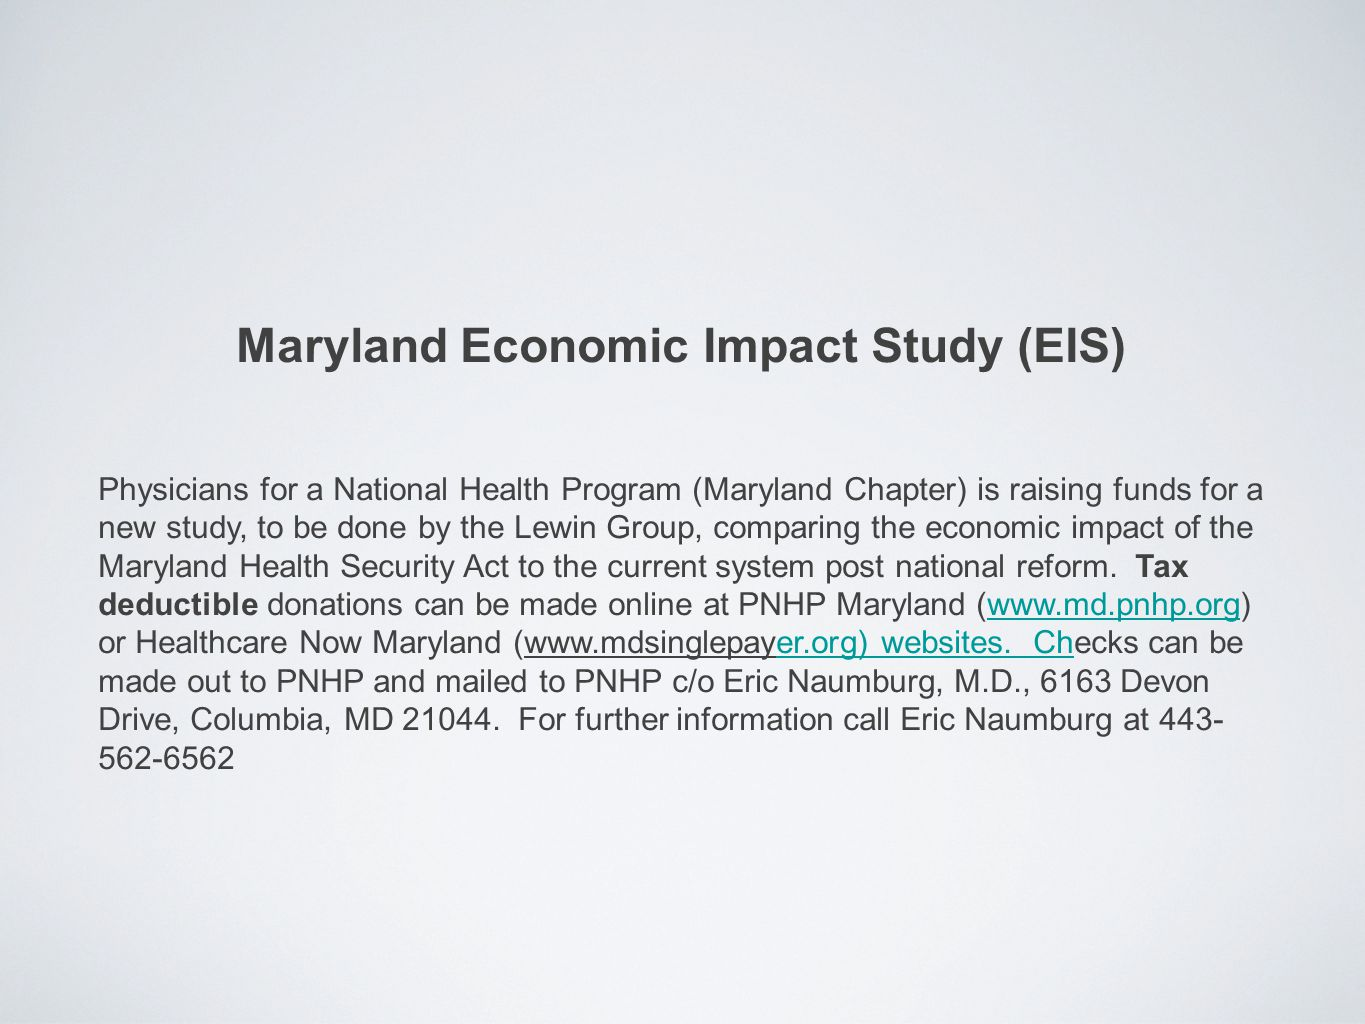 Maryland Economic Impact Study (EIS) Physicians for a National Health Program (Maryland Chapter) is raising funds for a new study, to be done by the Lewin Group, comparing the economic impact of the Maryland Health Security Act to the current system post national reform.